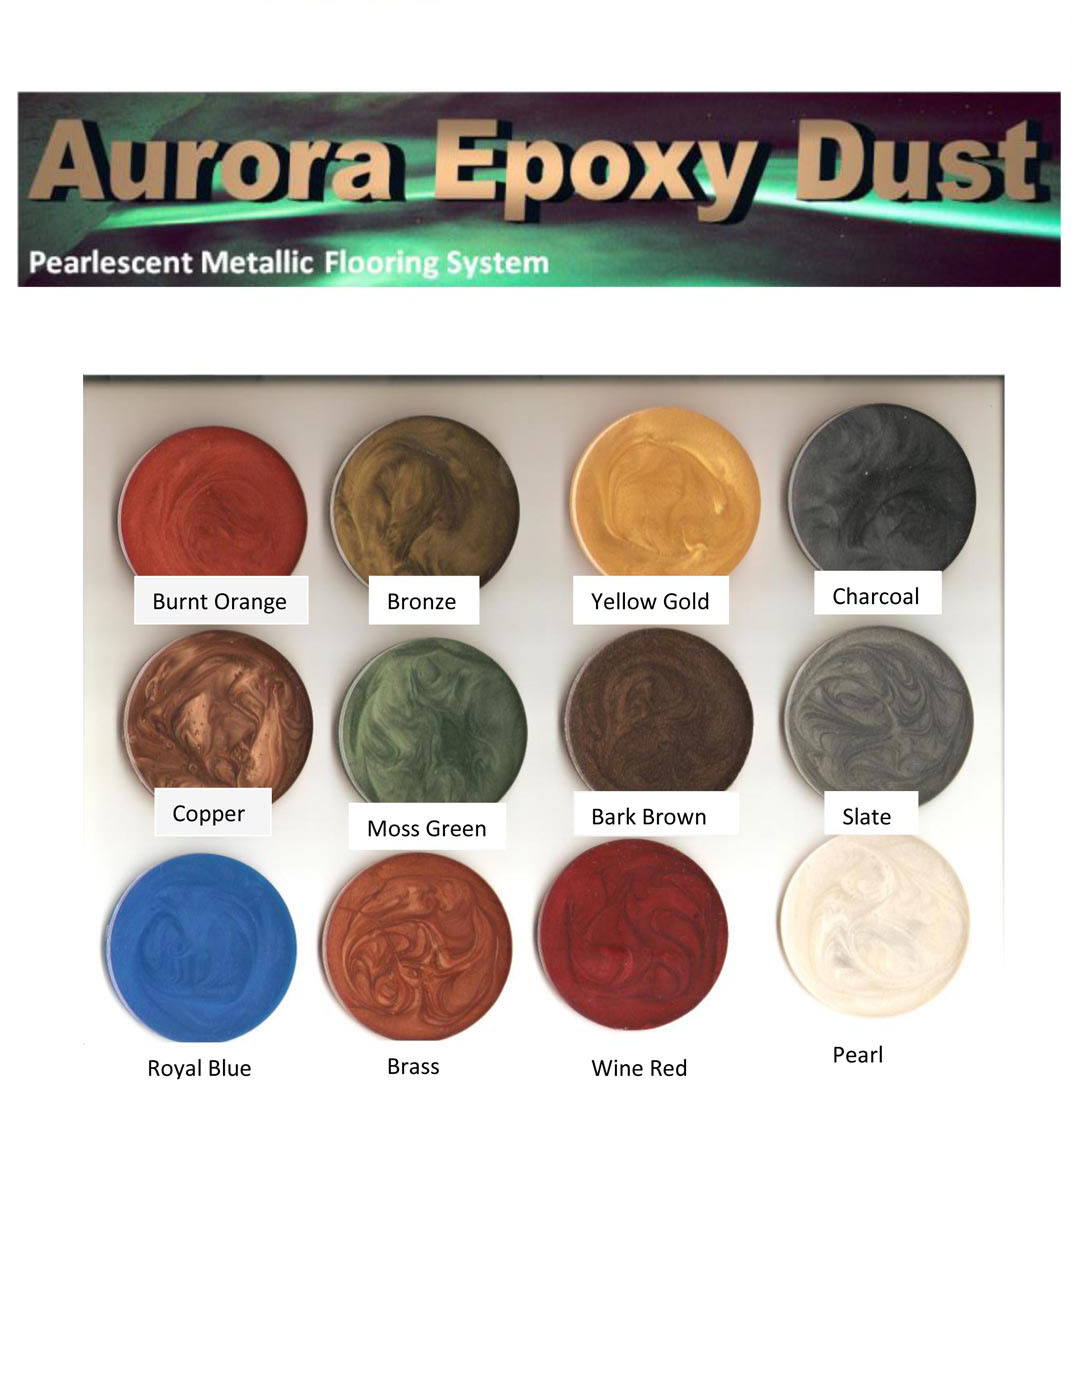 Epoxy-Dust-COLOR-CHART-PHOTO